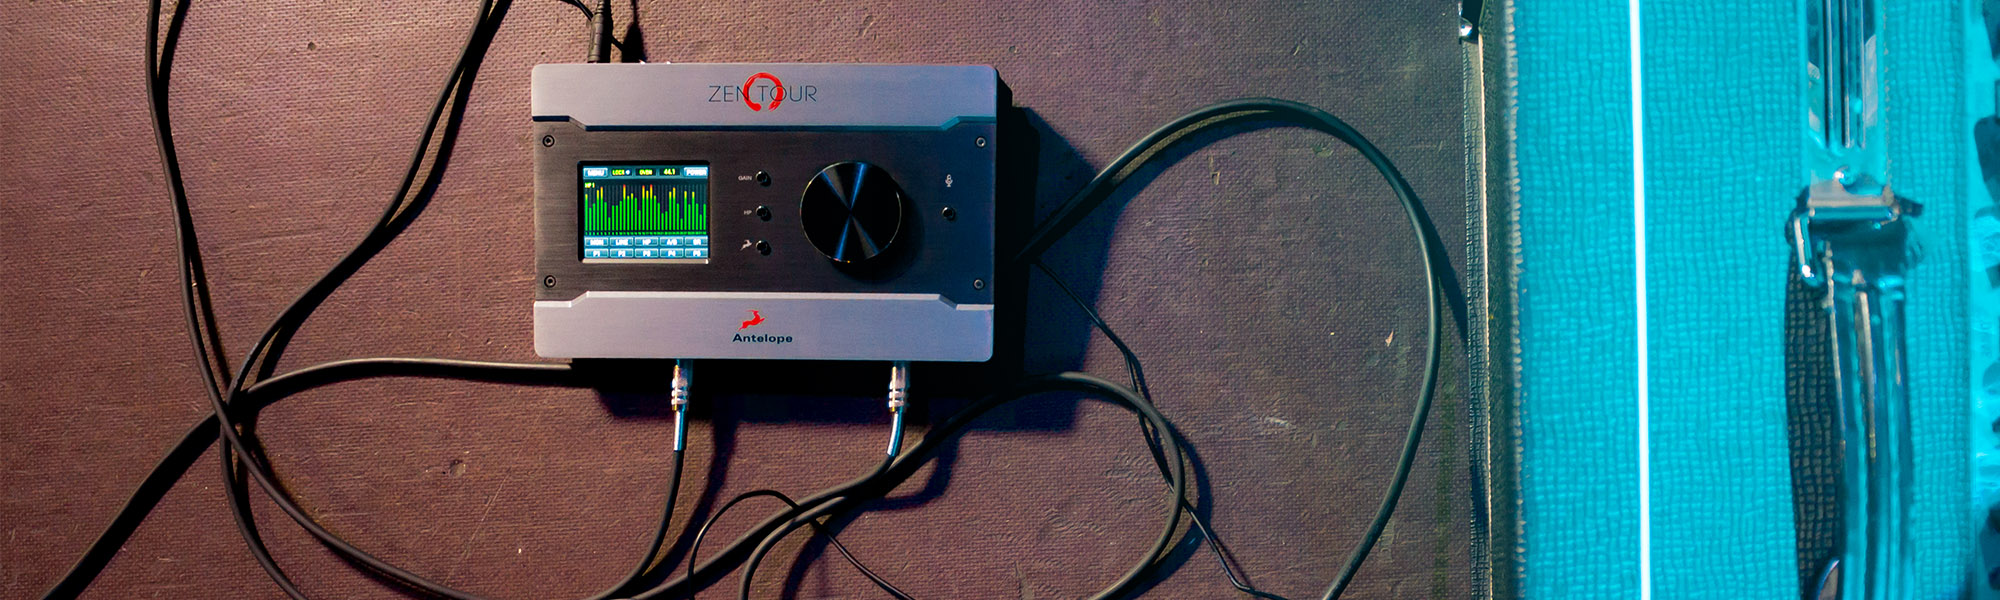 Zen Tour in Ask.Audio's s Top 7 audio interfaces for 2016